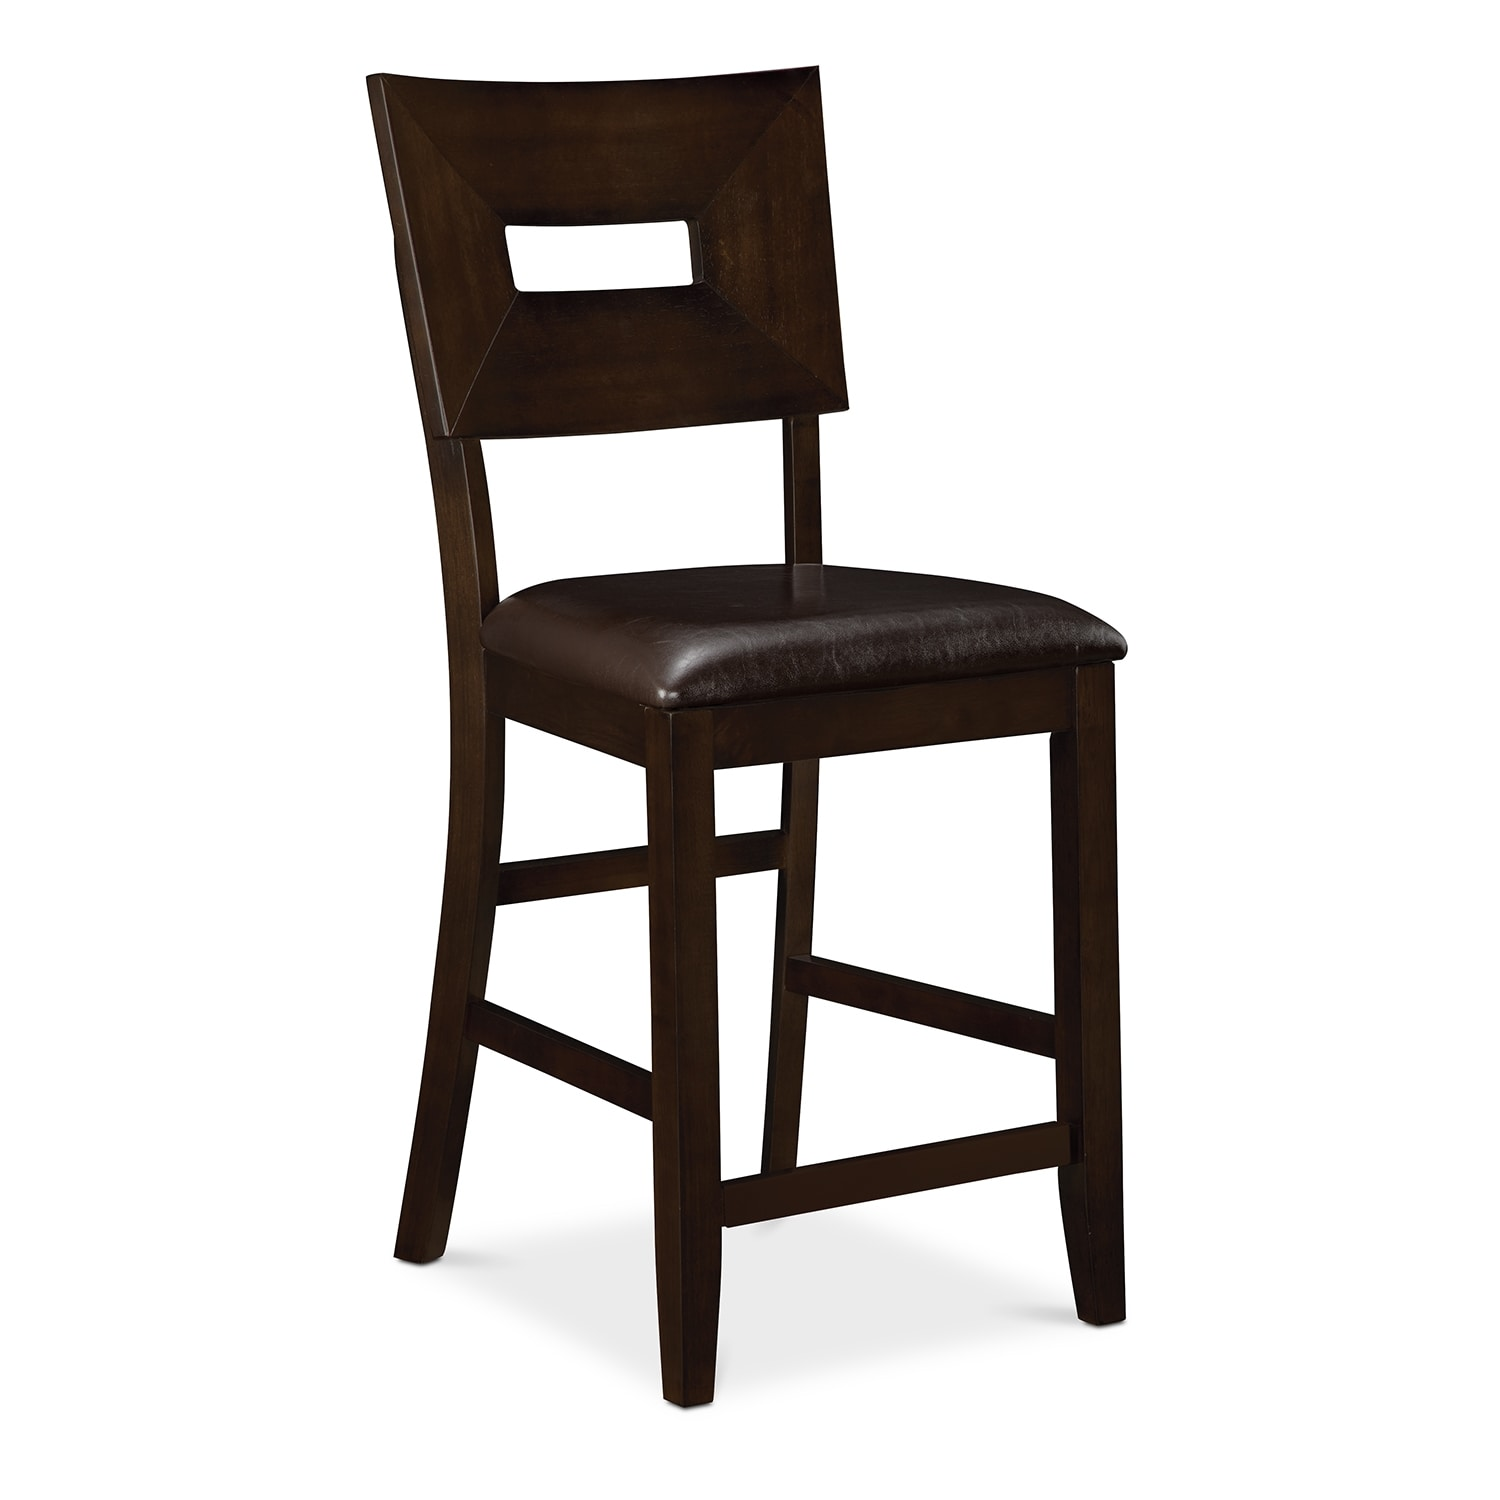 Cyprus II Counter-Height Stool Value City Furniture